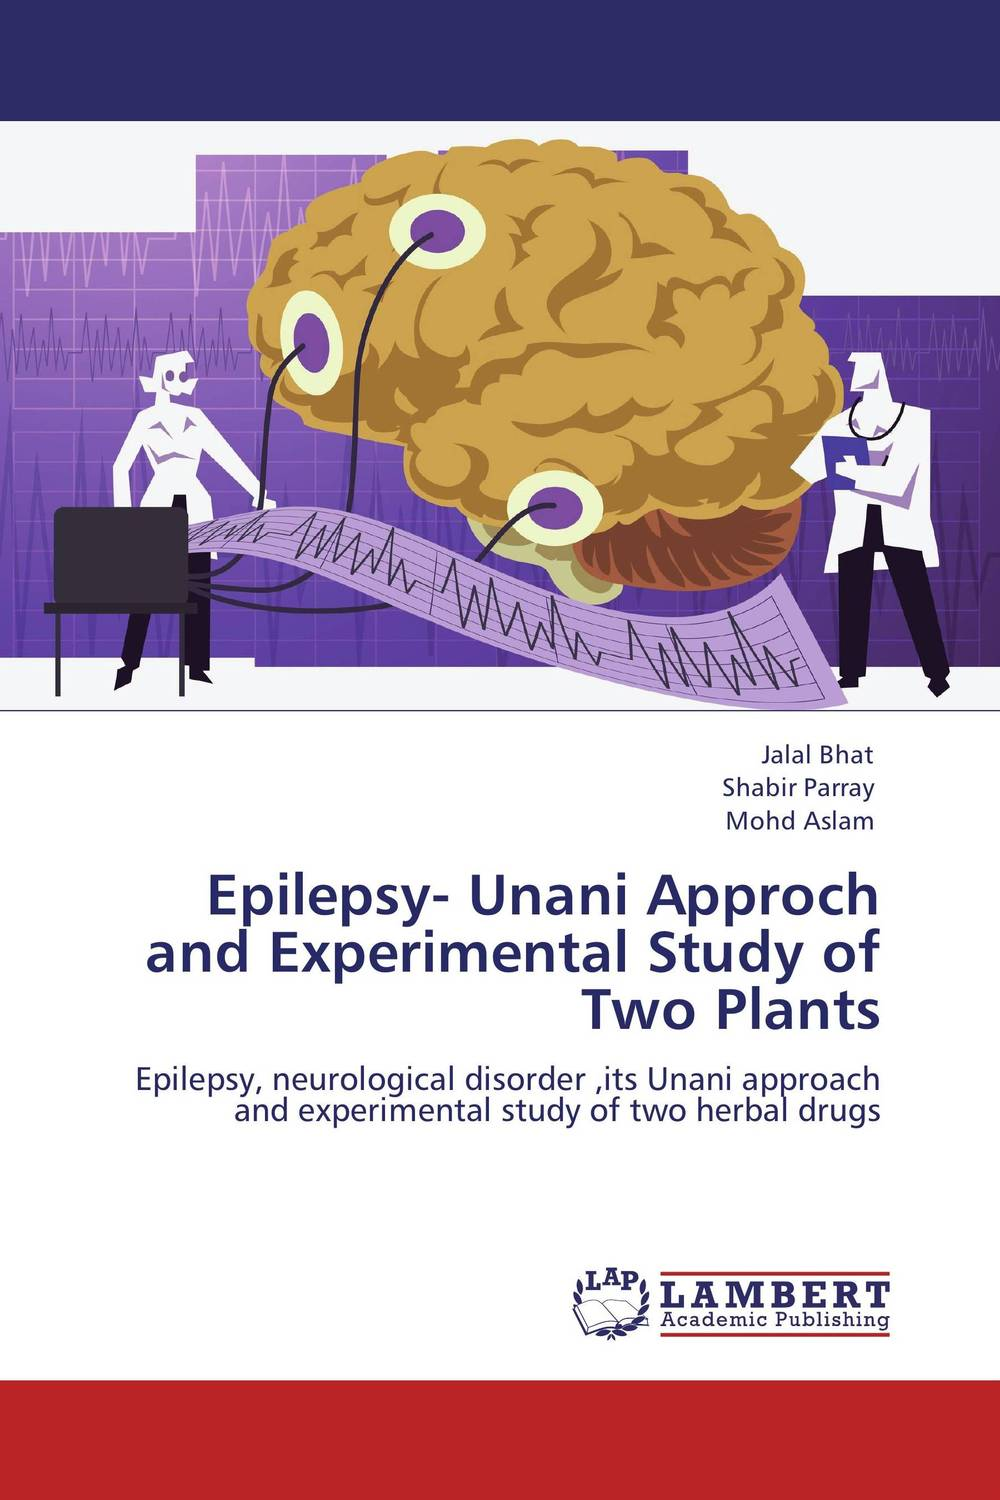 Epilepsy- Unani Approch and Experimental Study of Two Plants neurobiology of epilepsy and aging 81